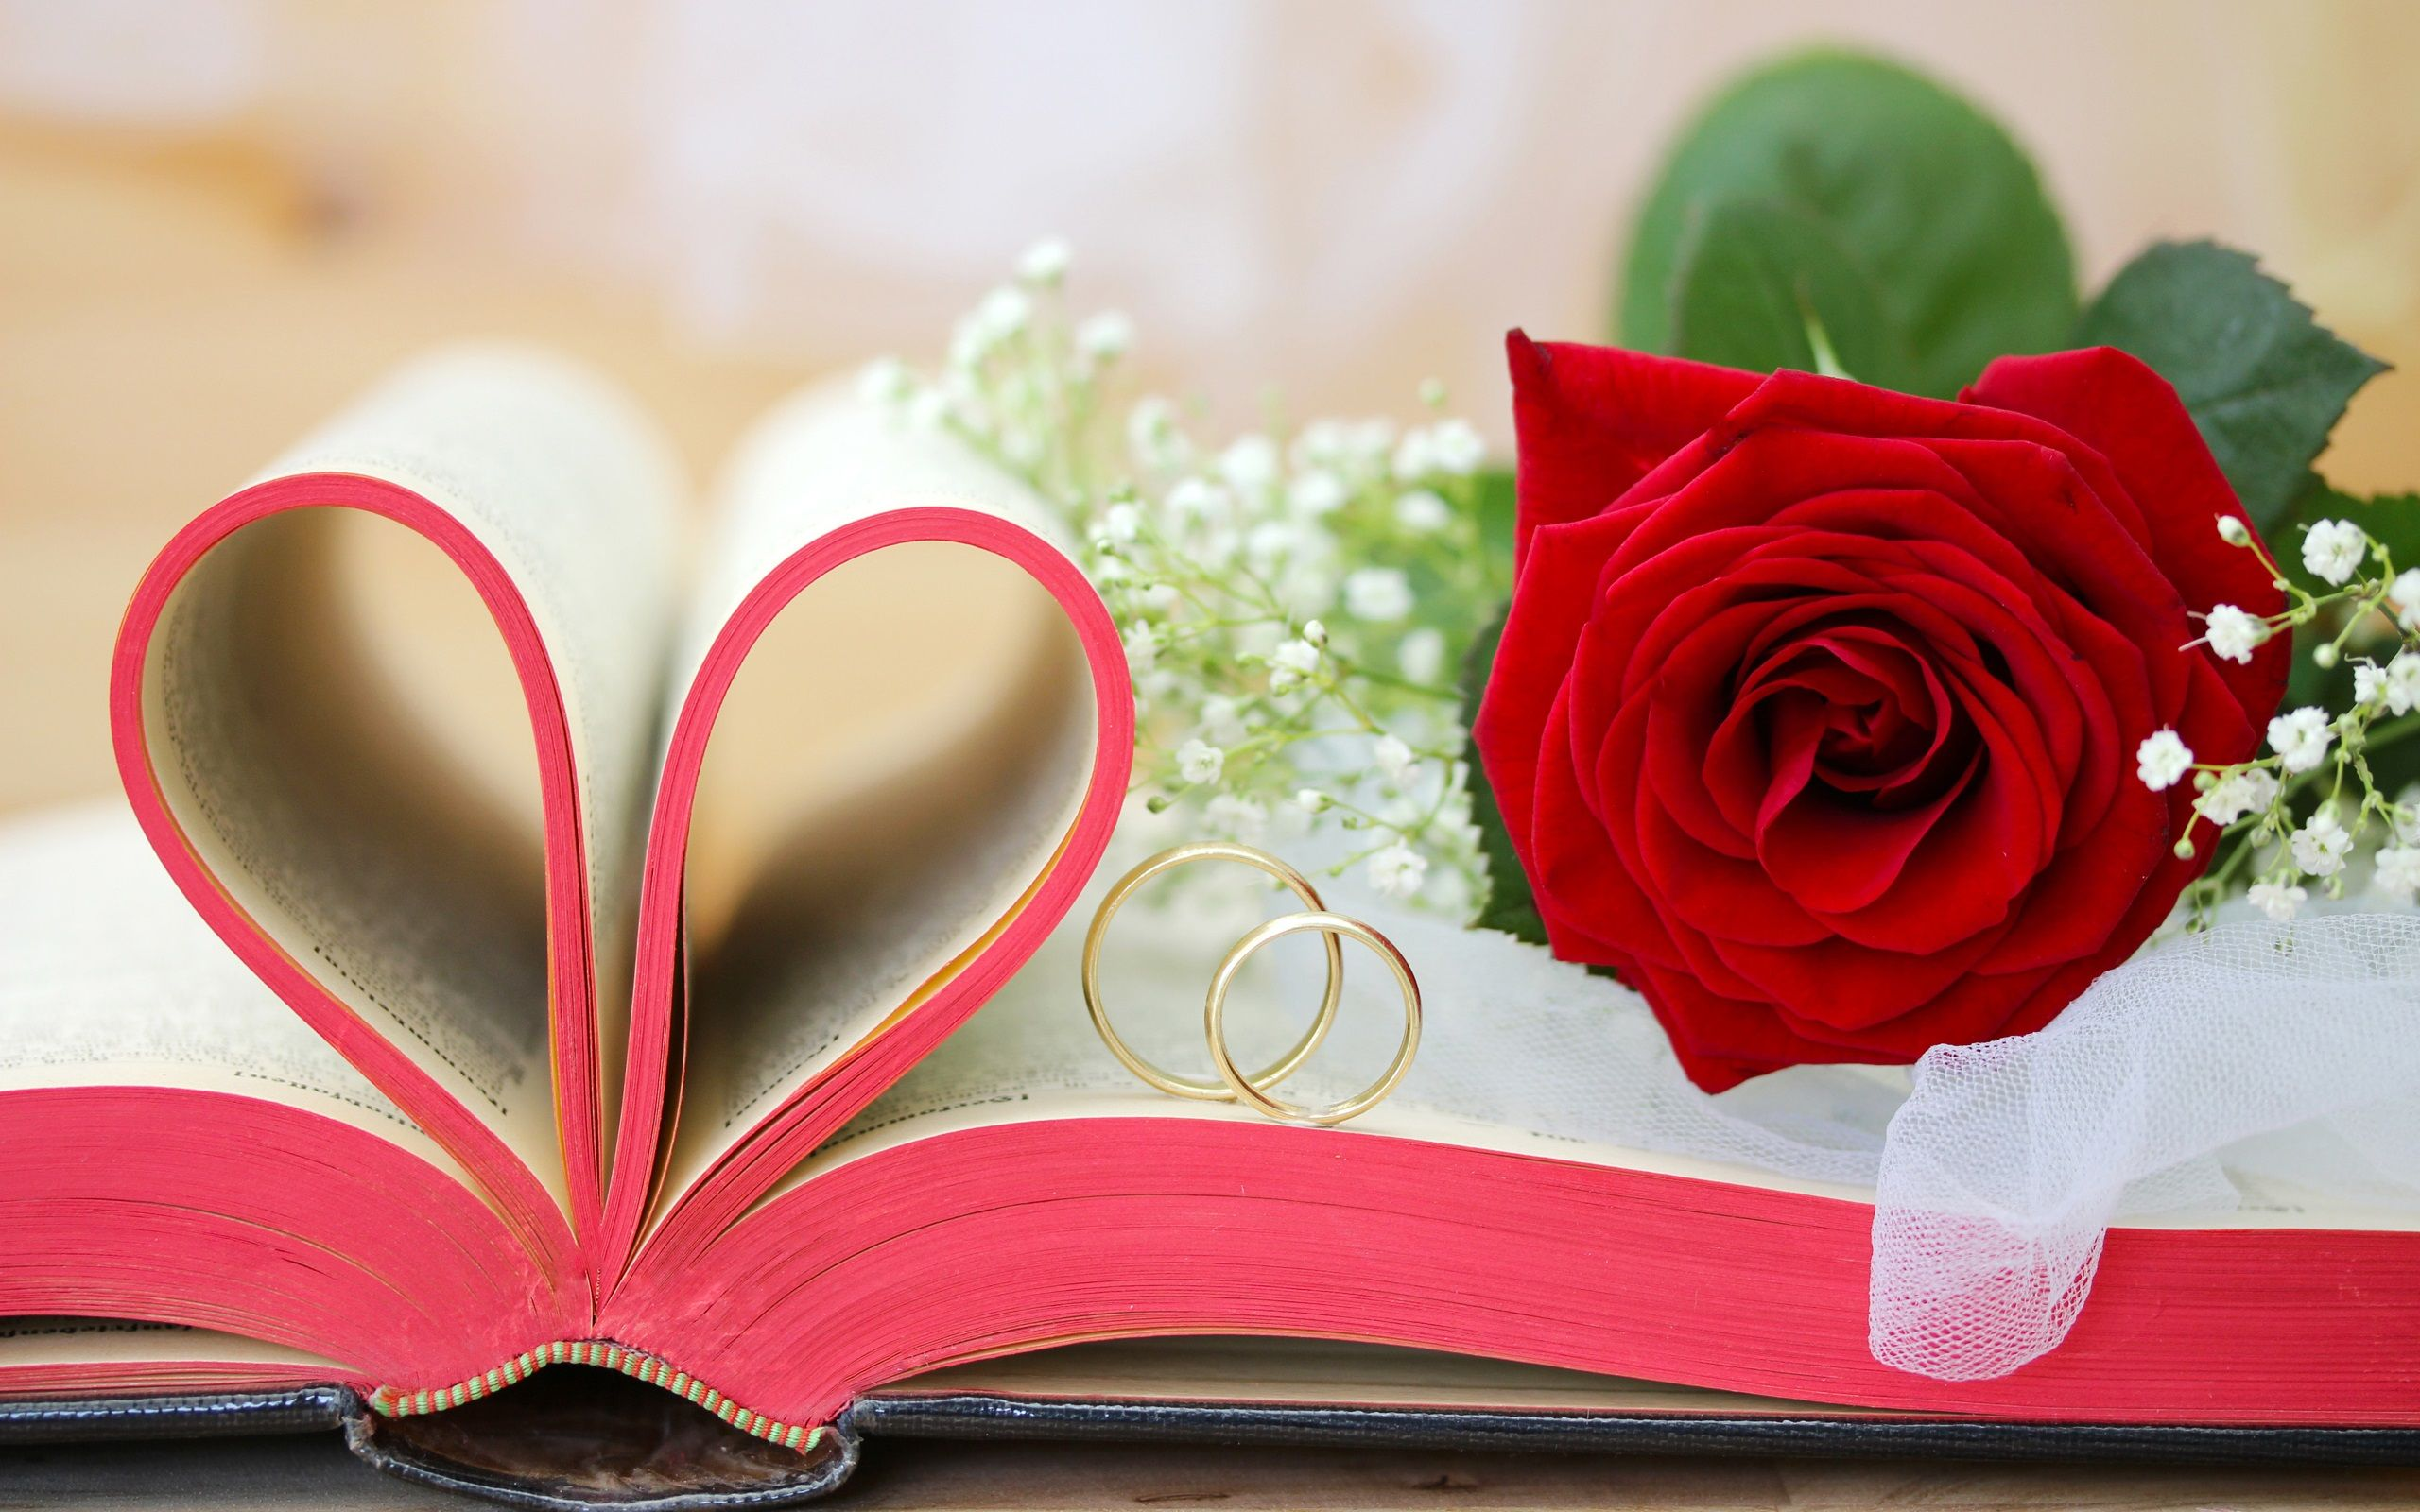 Red flowers, roses, Valentine's Day, book, love hearts, rings ...